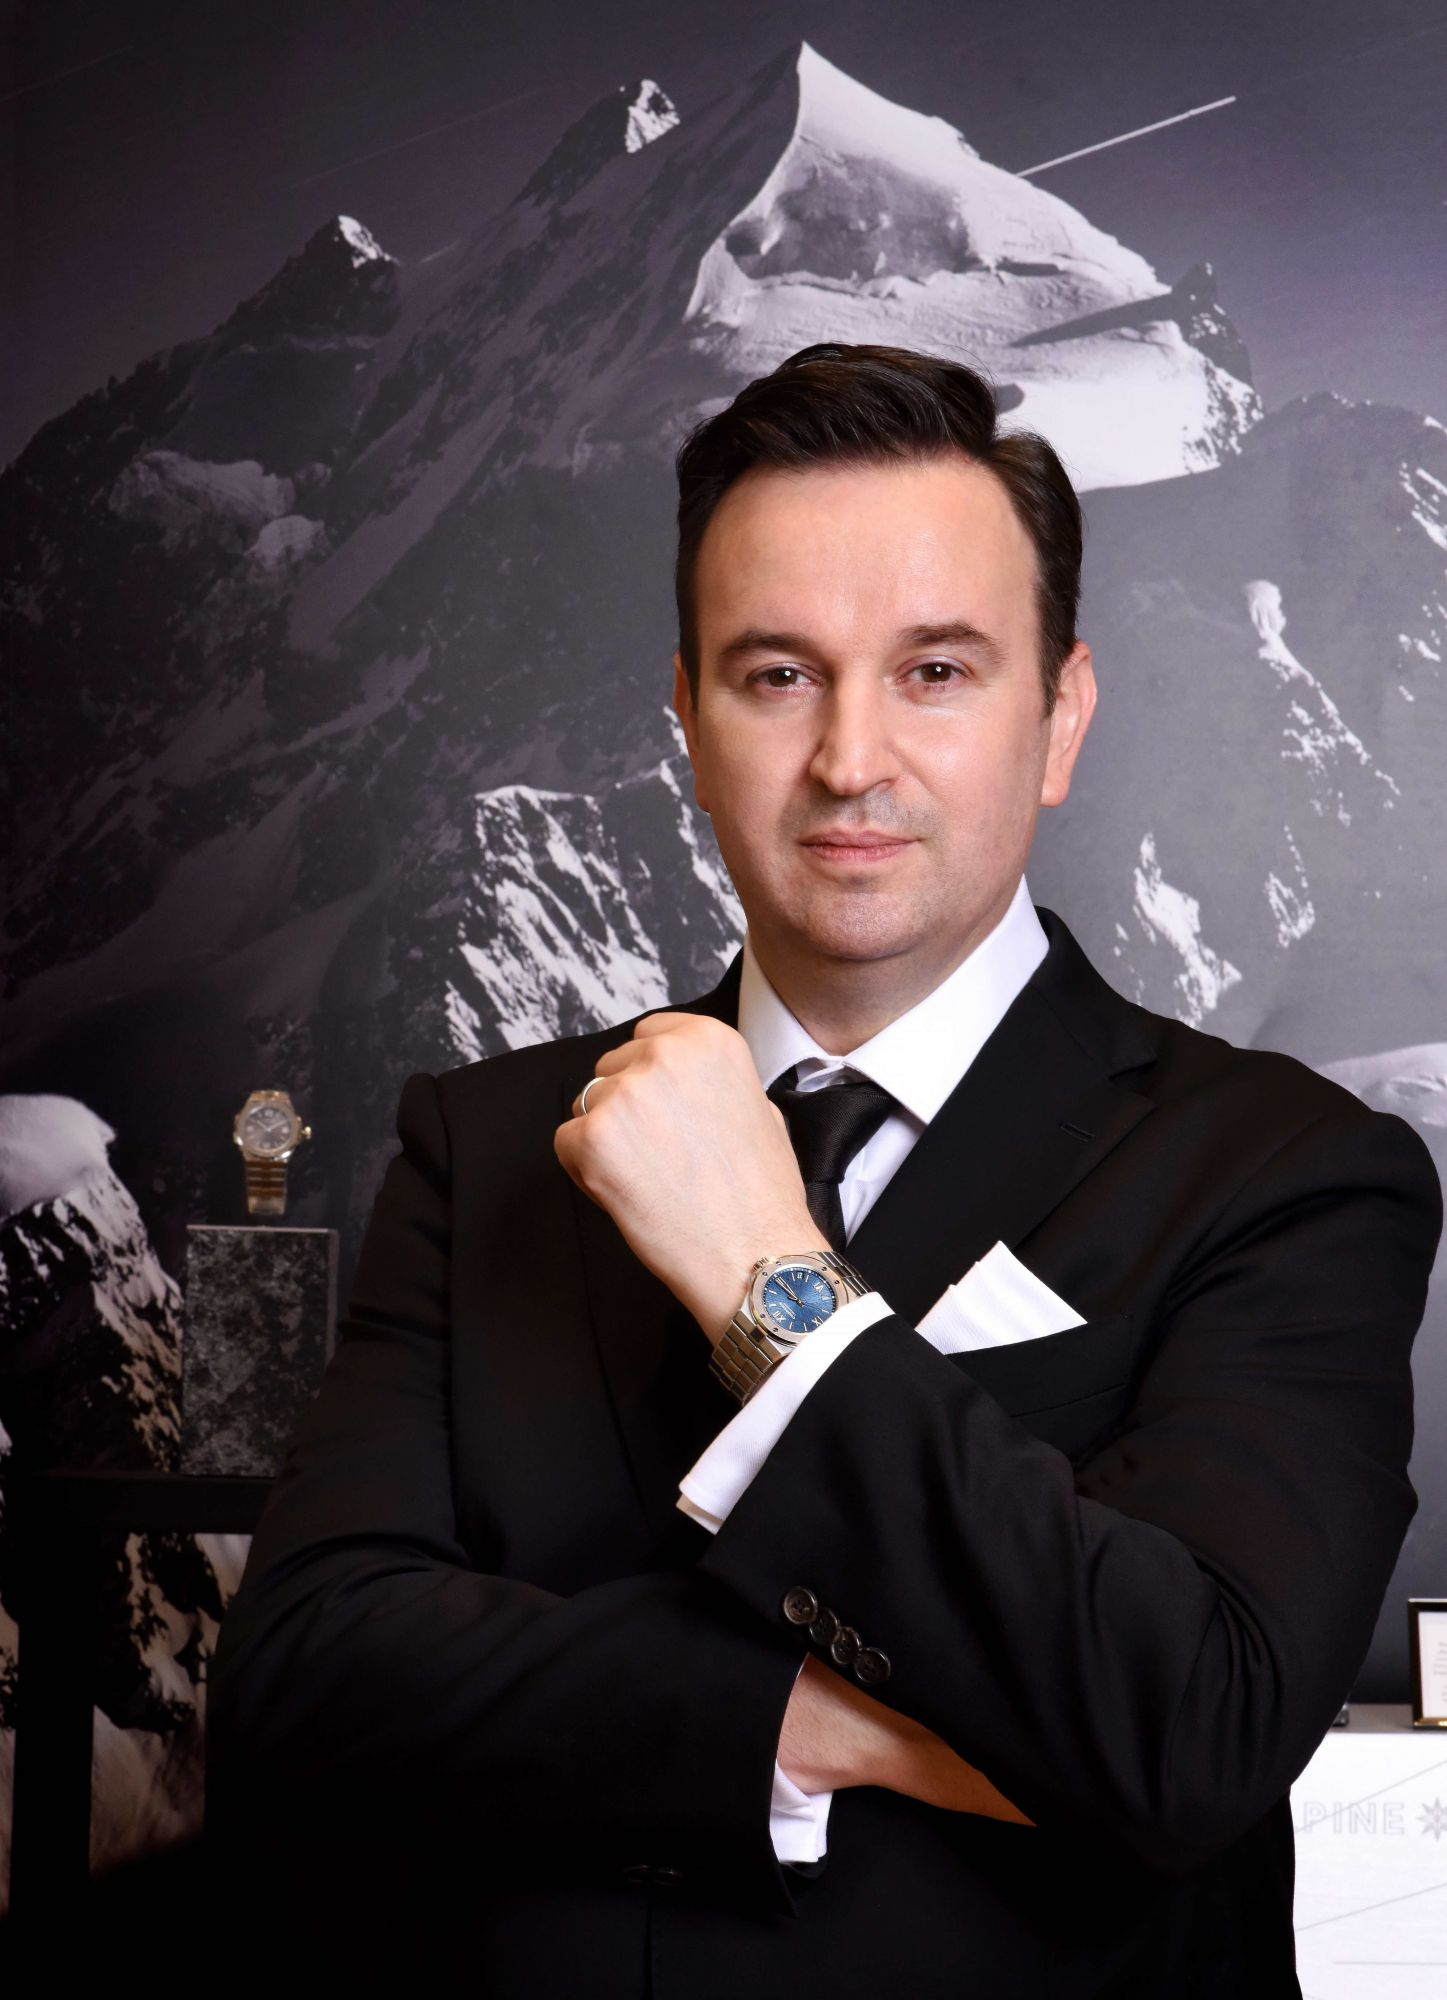 Les Amis' Chef Sebastien Lepinoy Gets Appointed As Chopard's Friend Of The Brand